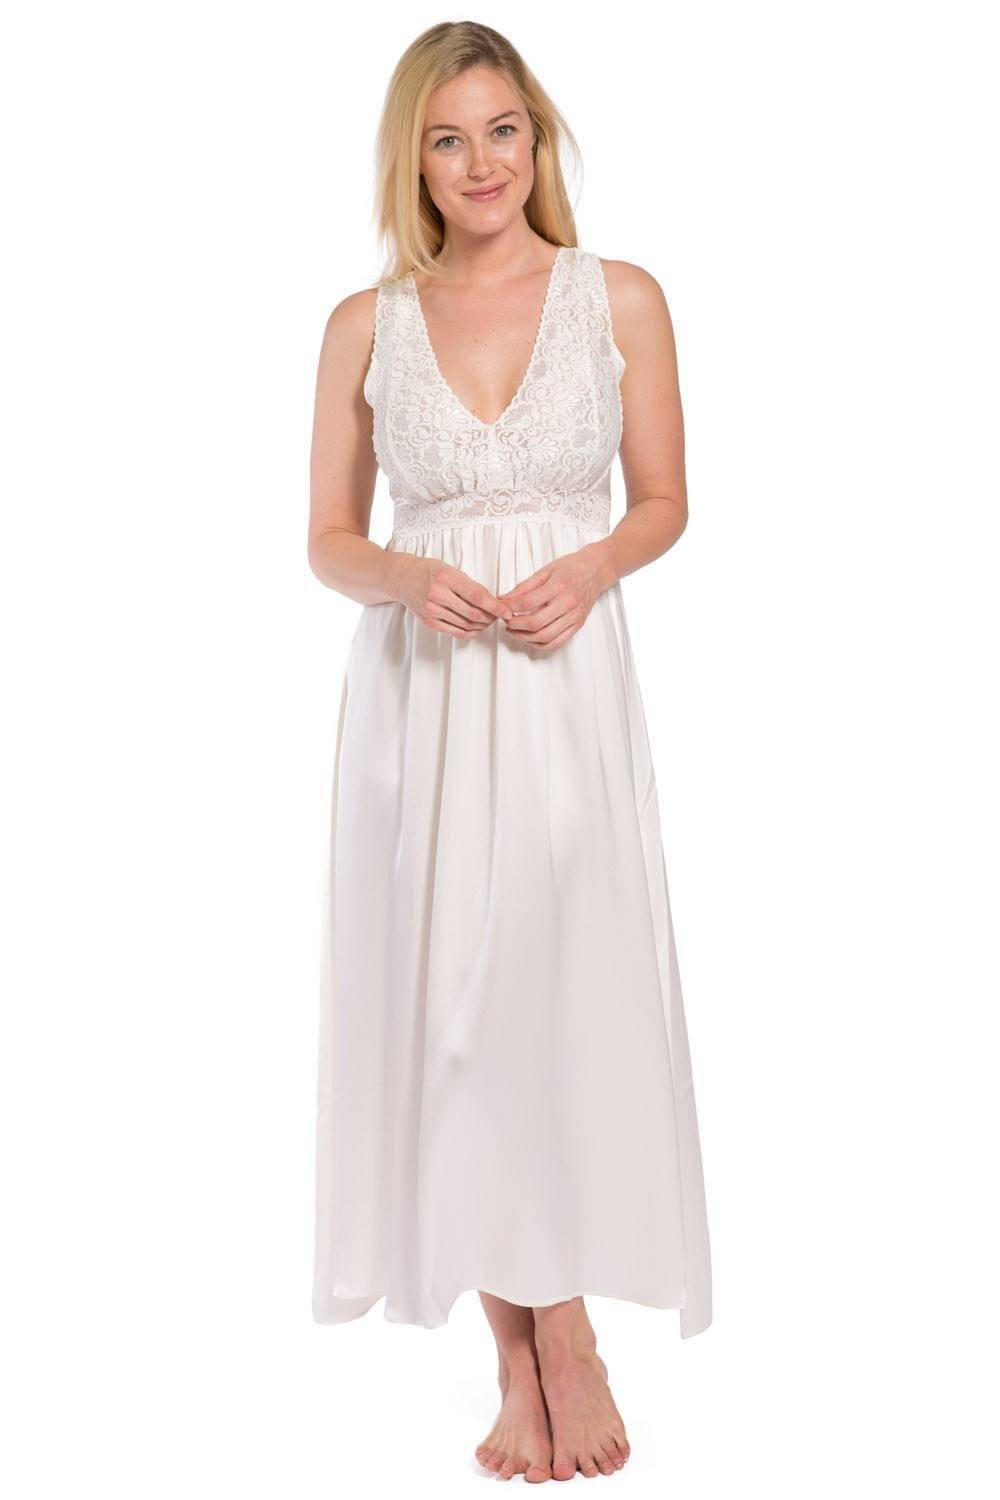 Sweet dreams await in Soft Surroundings' collection of long nightgowns. Soft to the touch, so you can slumber in superior comfort. Shop Womens Nightgowns!